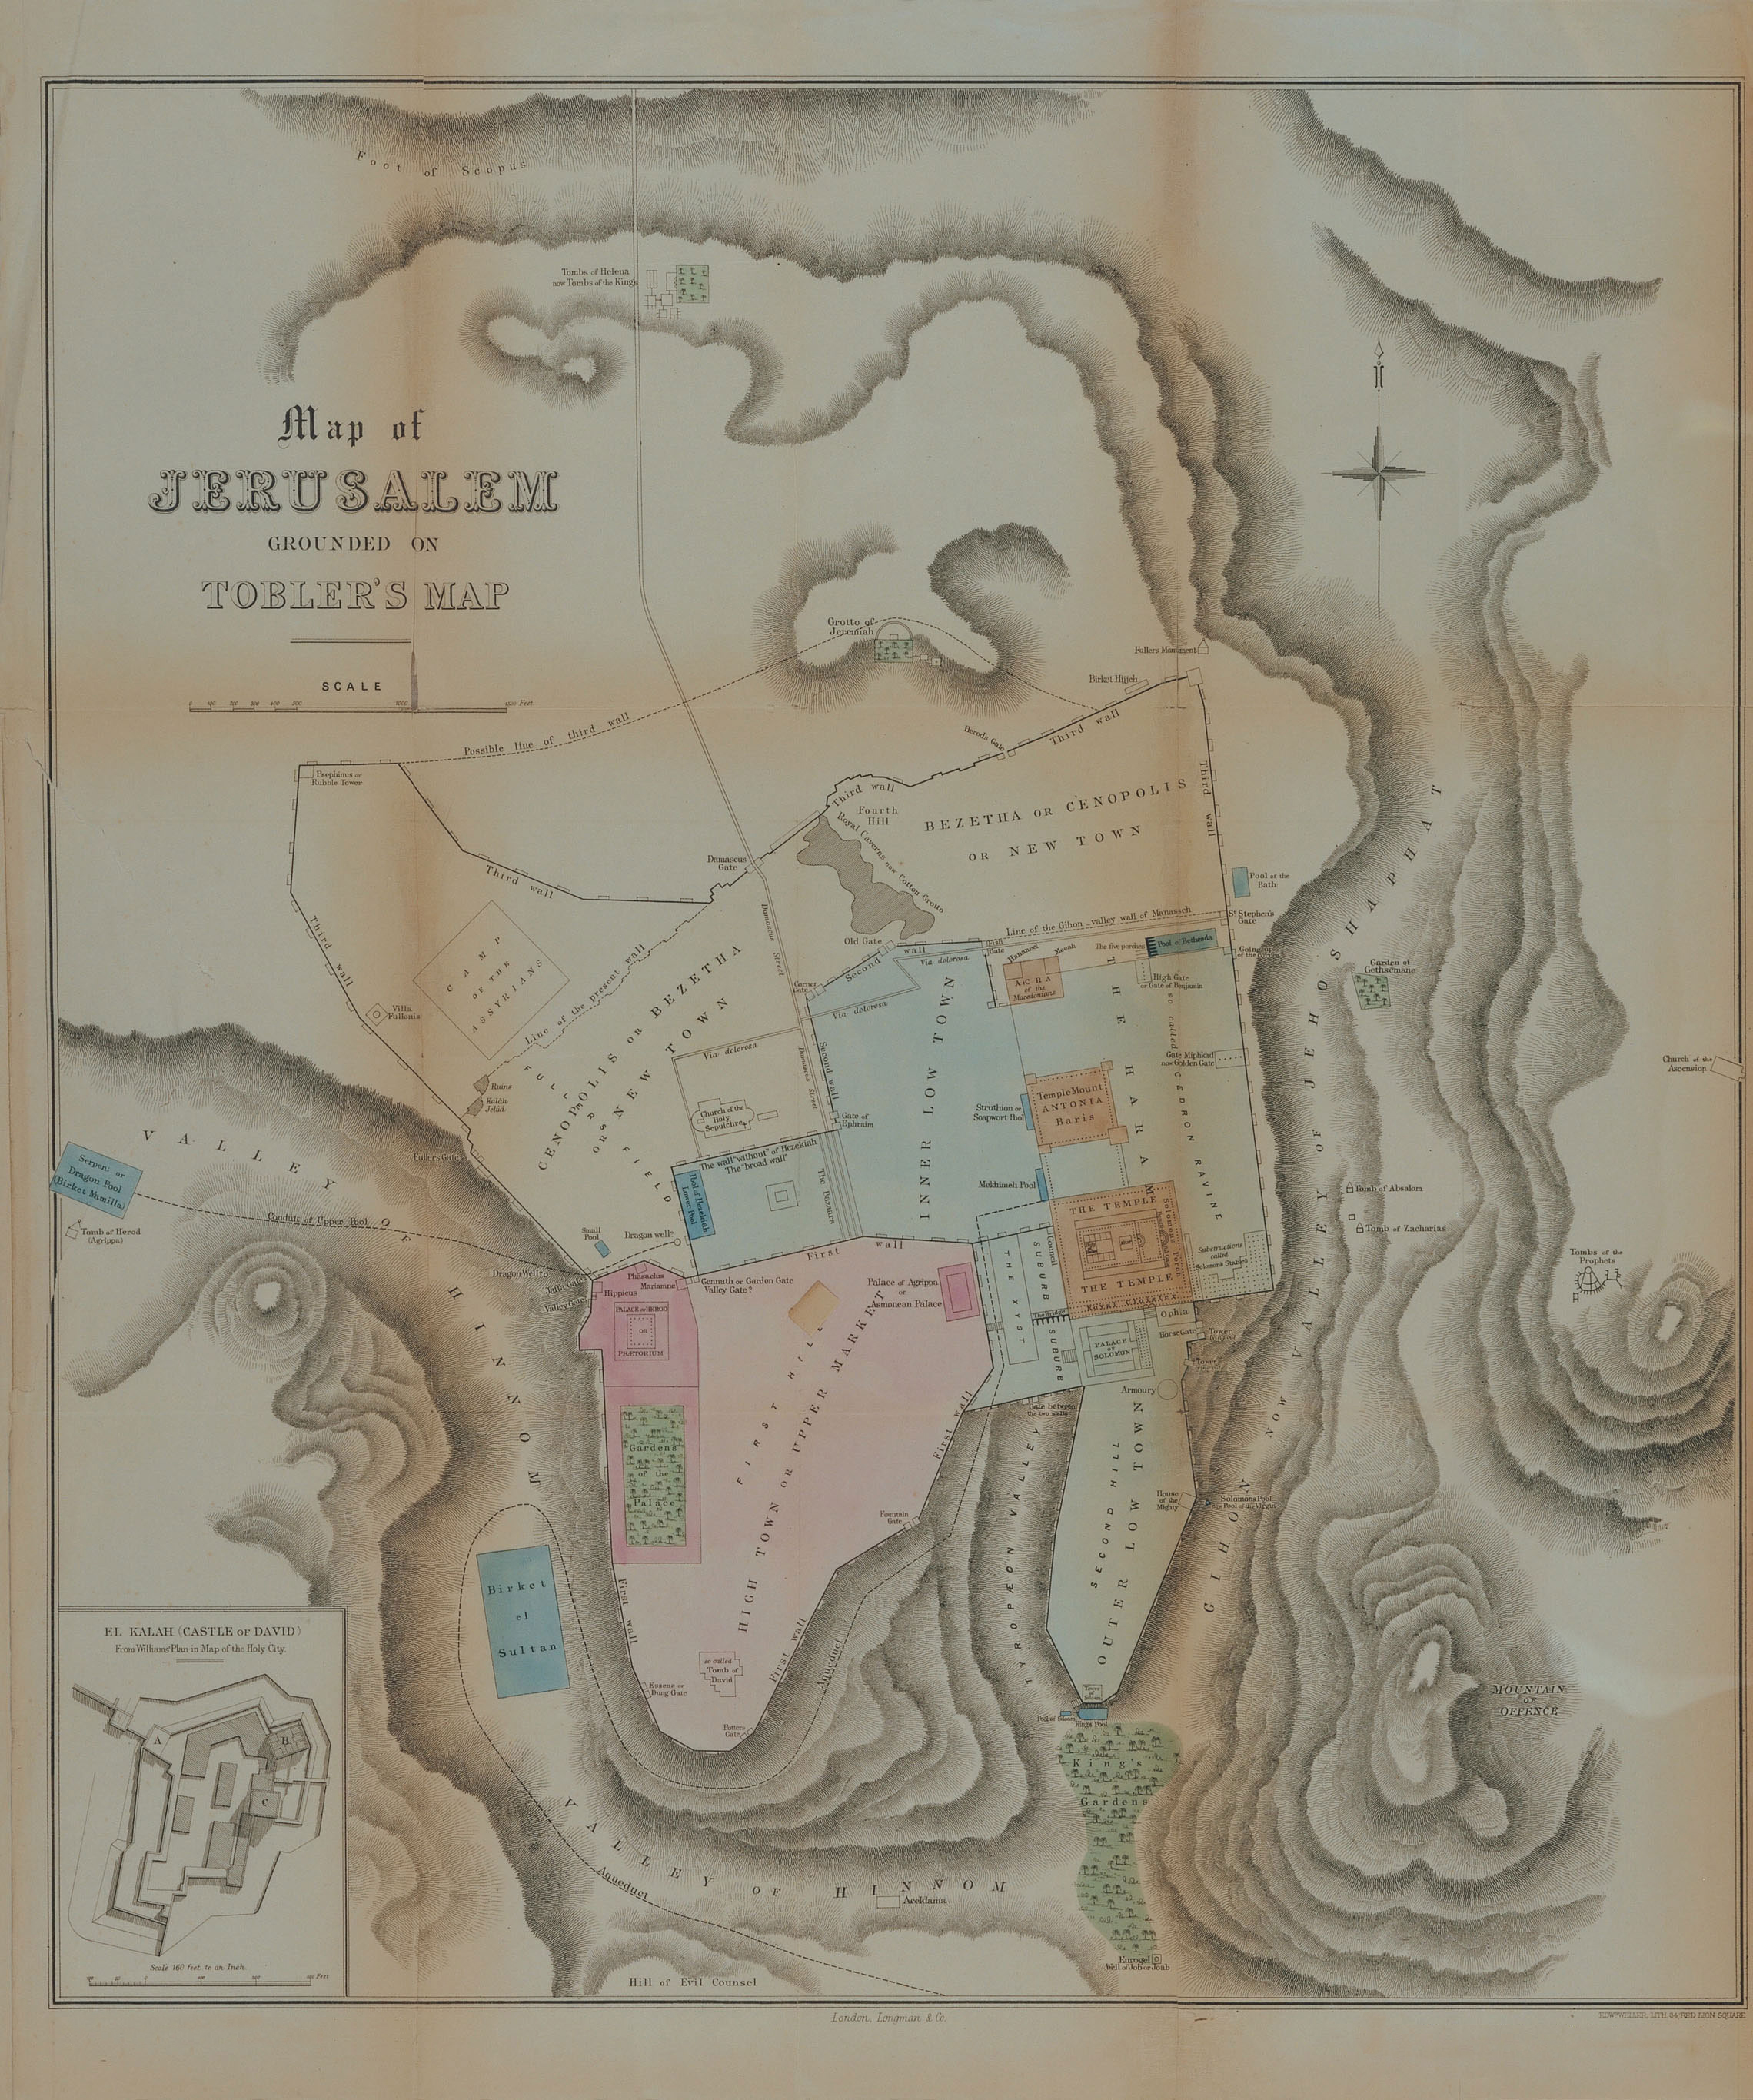 Map_of_Jerusalem-_grounded_on_Tobler's_map